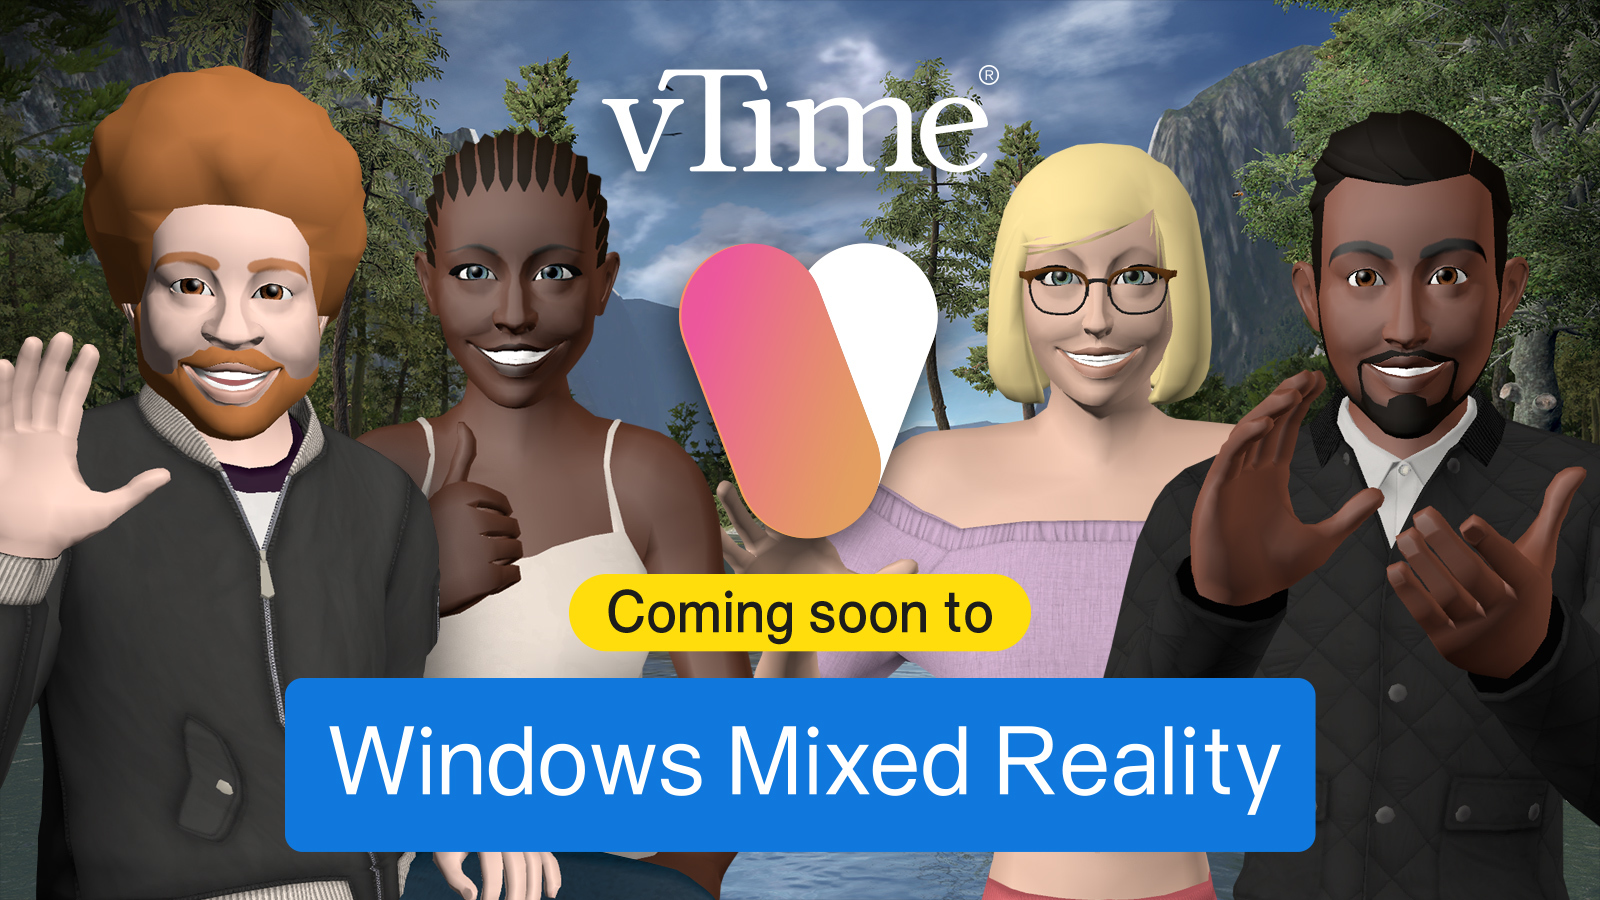 vtime is coming to windows mixed reality